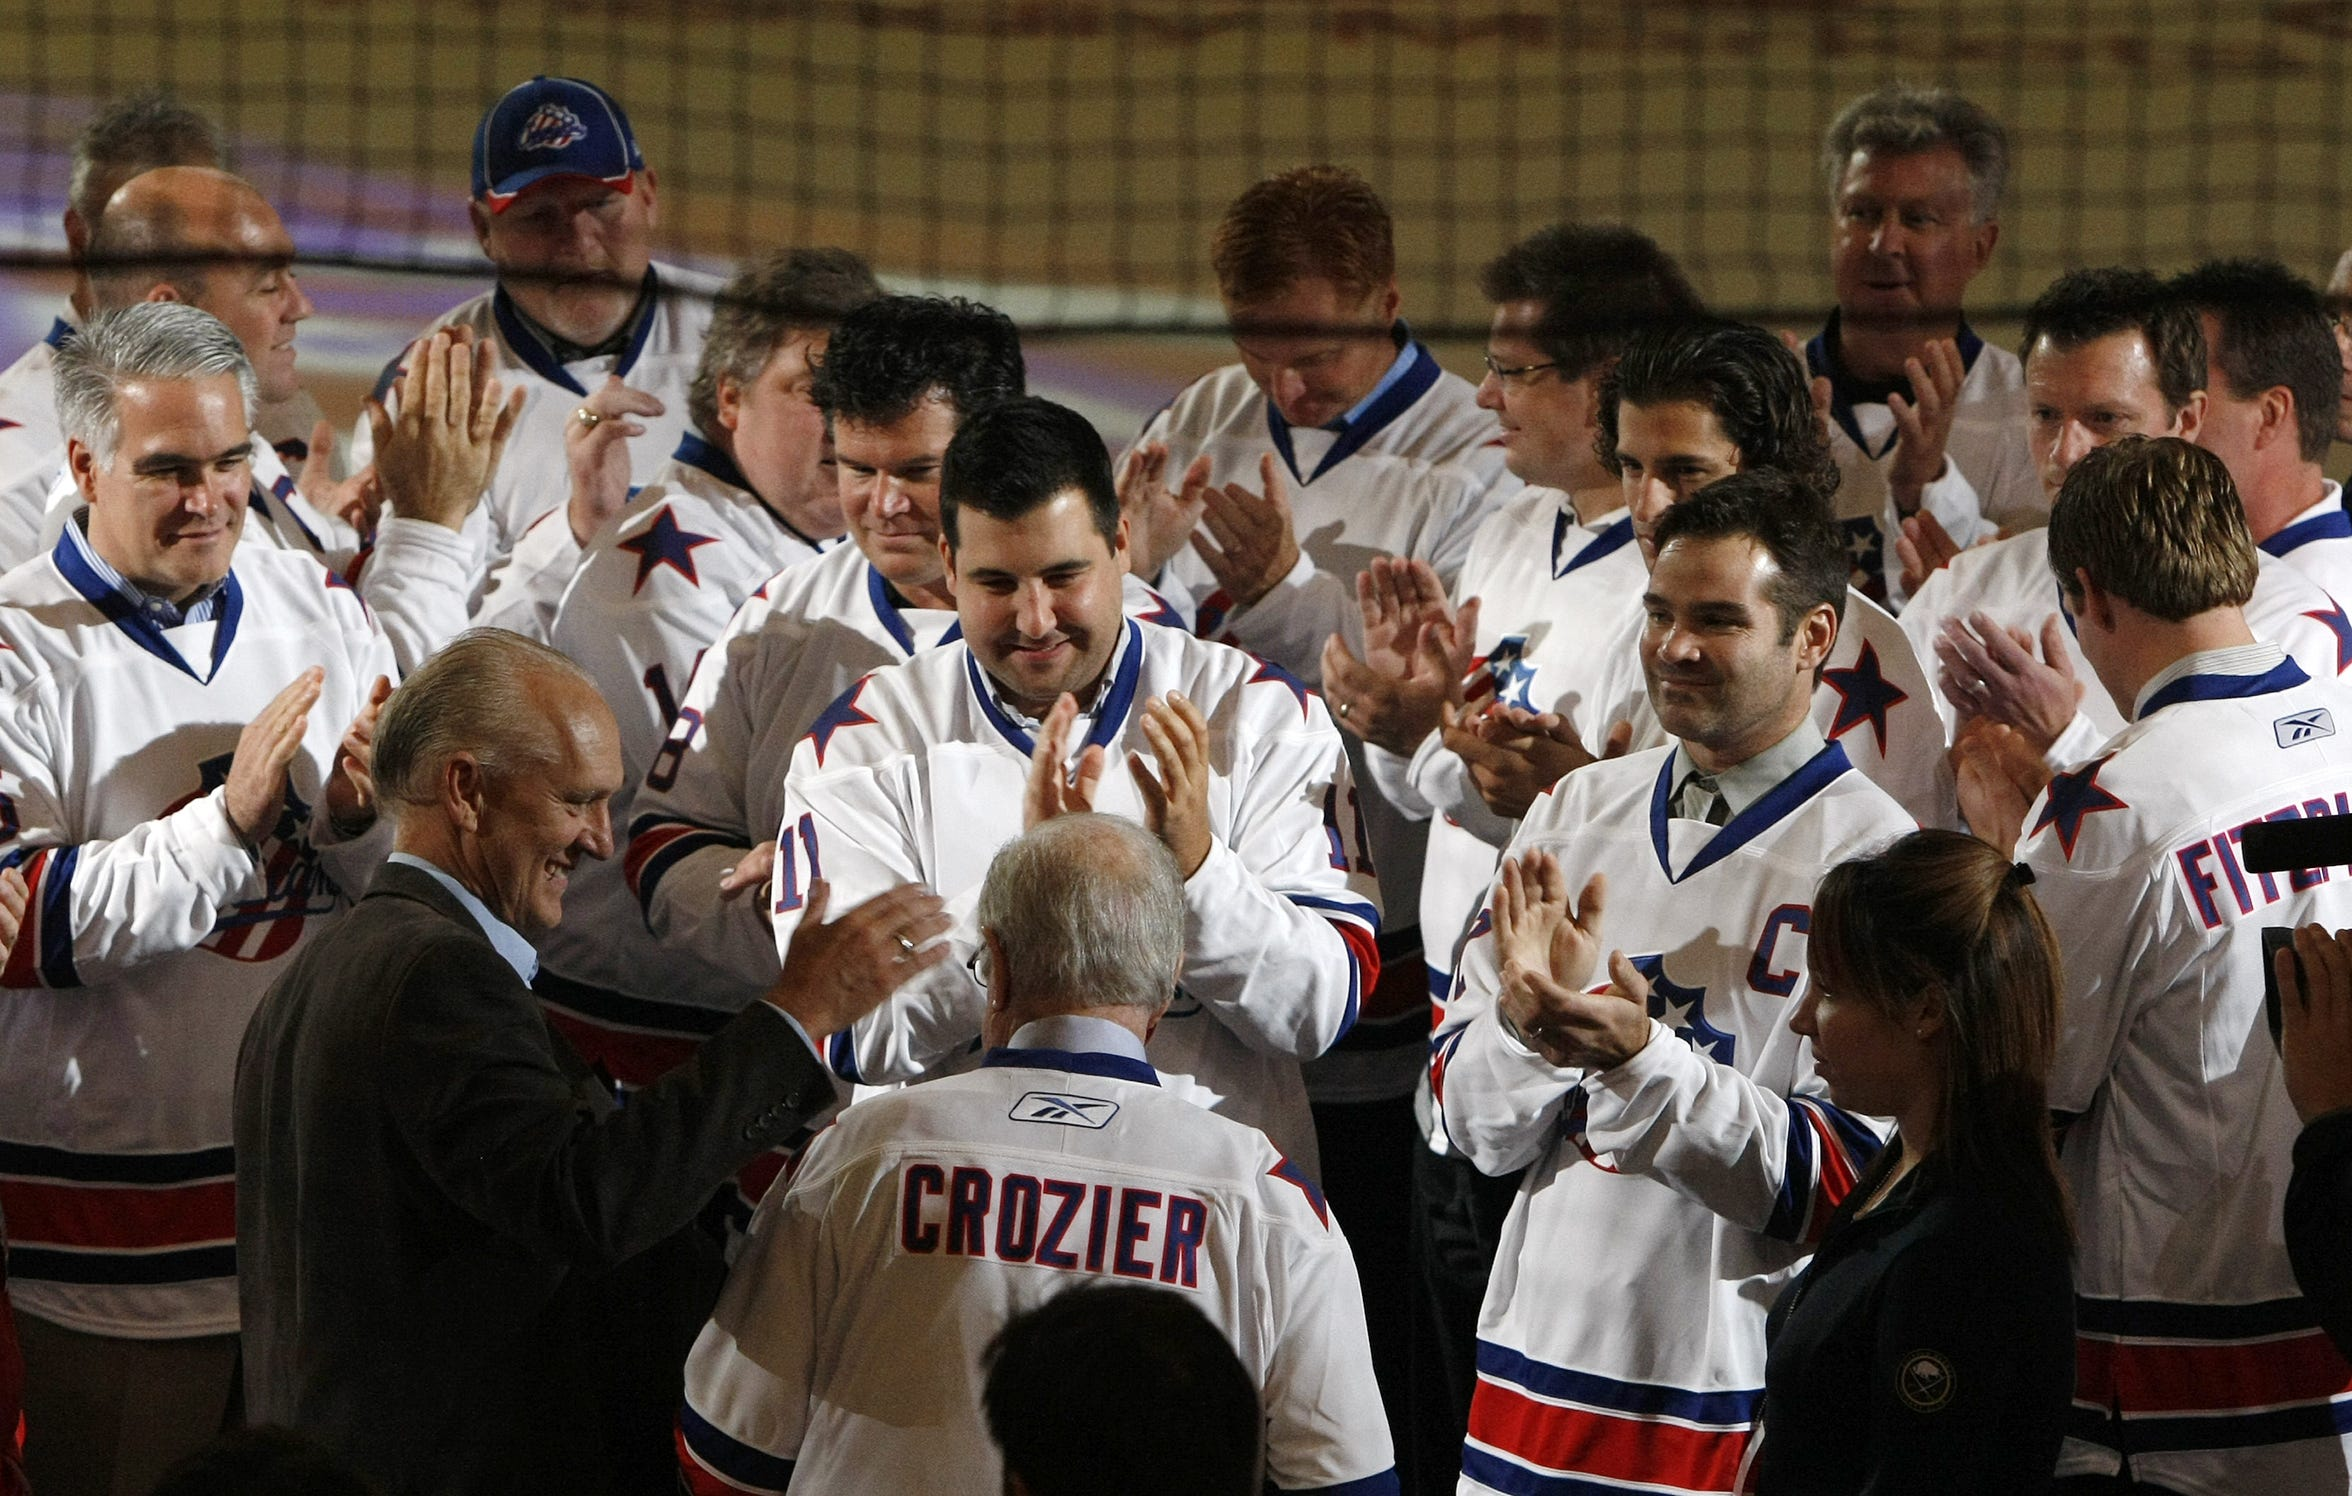 Five decades of Rochester Americans alumni show respects to former coach Joe Crozier, bottom center, as he was announced as the next inductee into the  American Hockey League Hall of Fame, during pregame ceremonies prior to the Amerks home opener between the Wilkes-Barre/Scranton Penguins on Oct. 13, 2011.